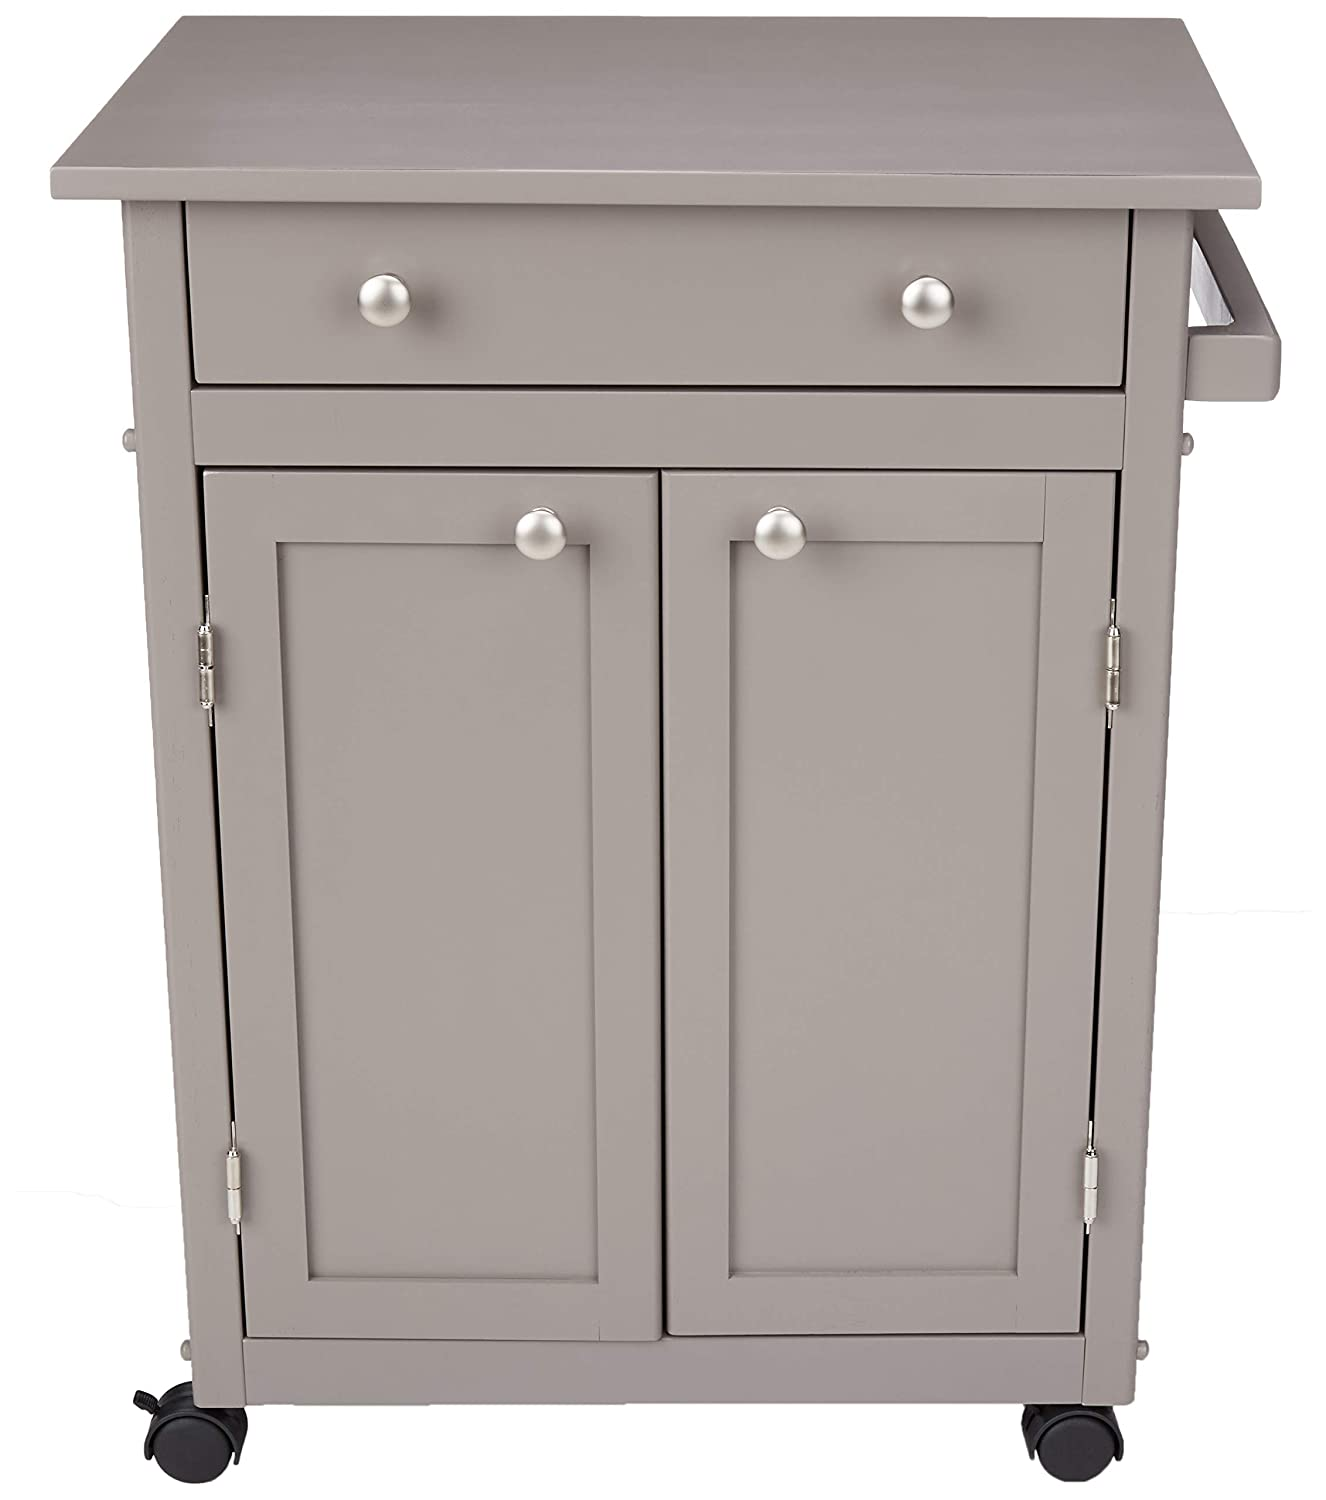 AmazonBasics Classic Solid Rubber Wood Kitchen Cart with Cabinet Rustic Grey